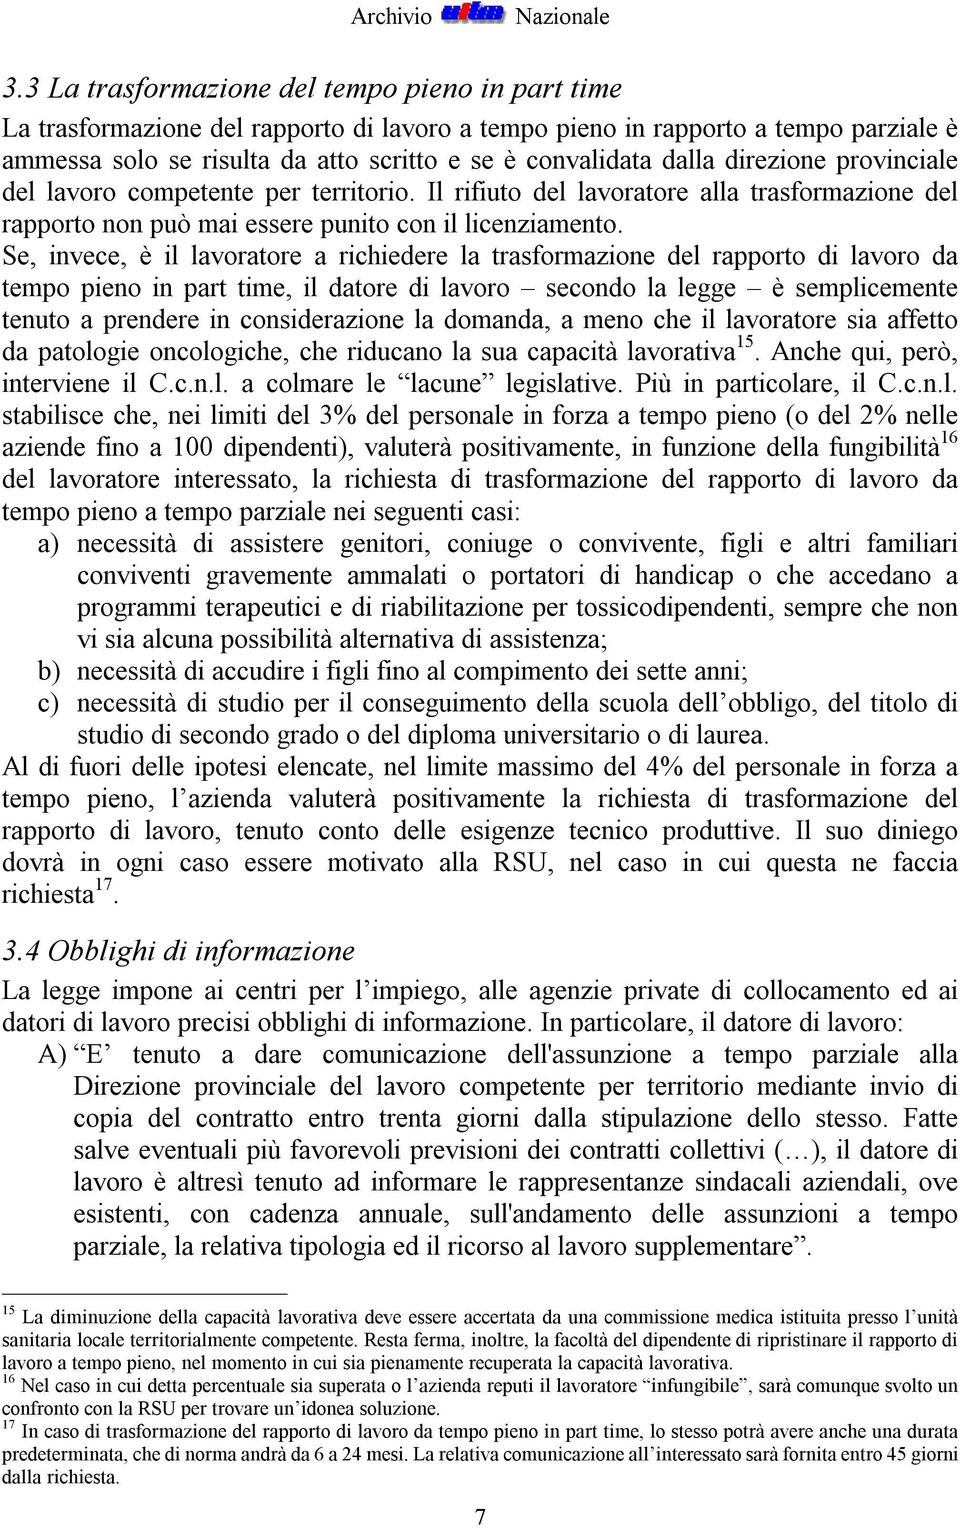 3 manuale del sindacalista uilm sul part time in